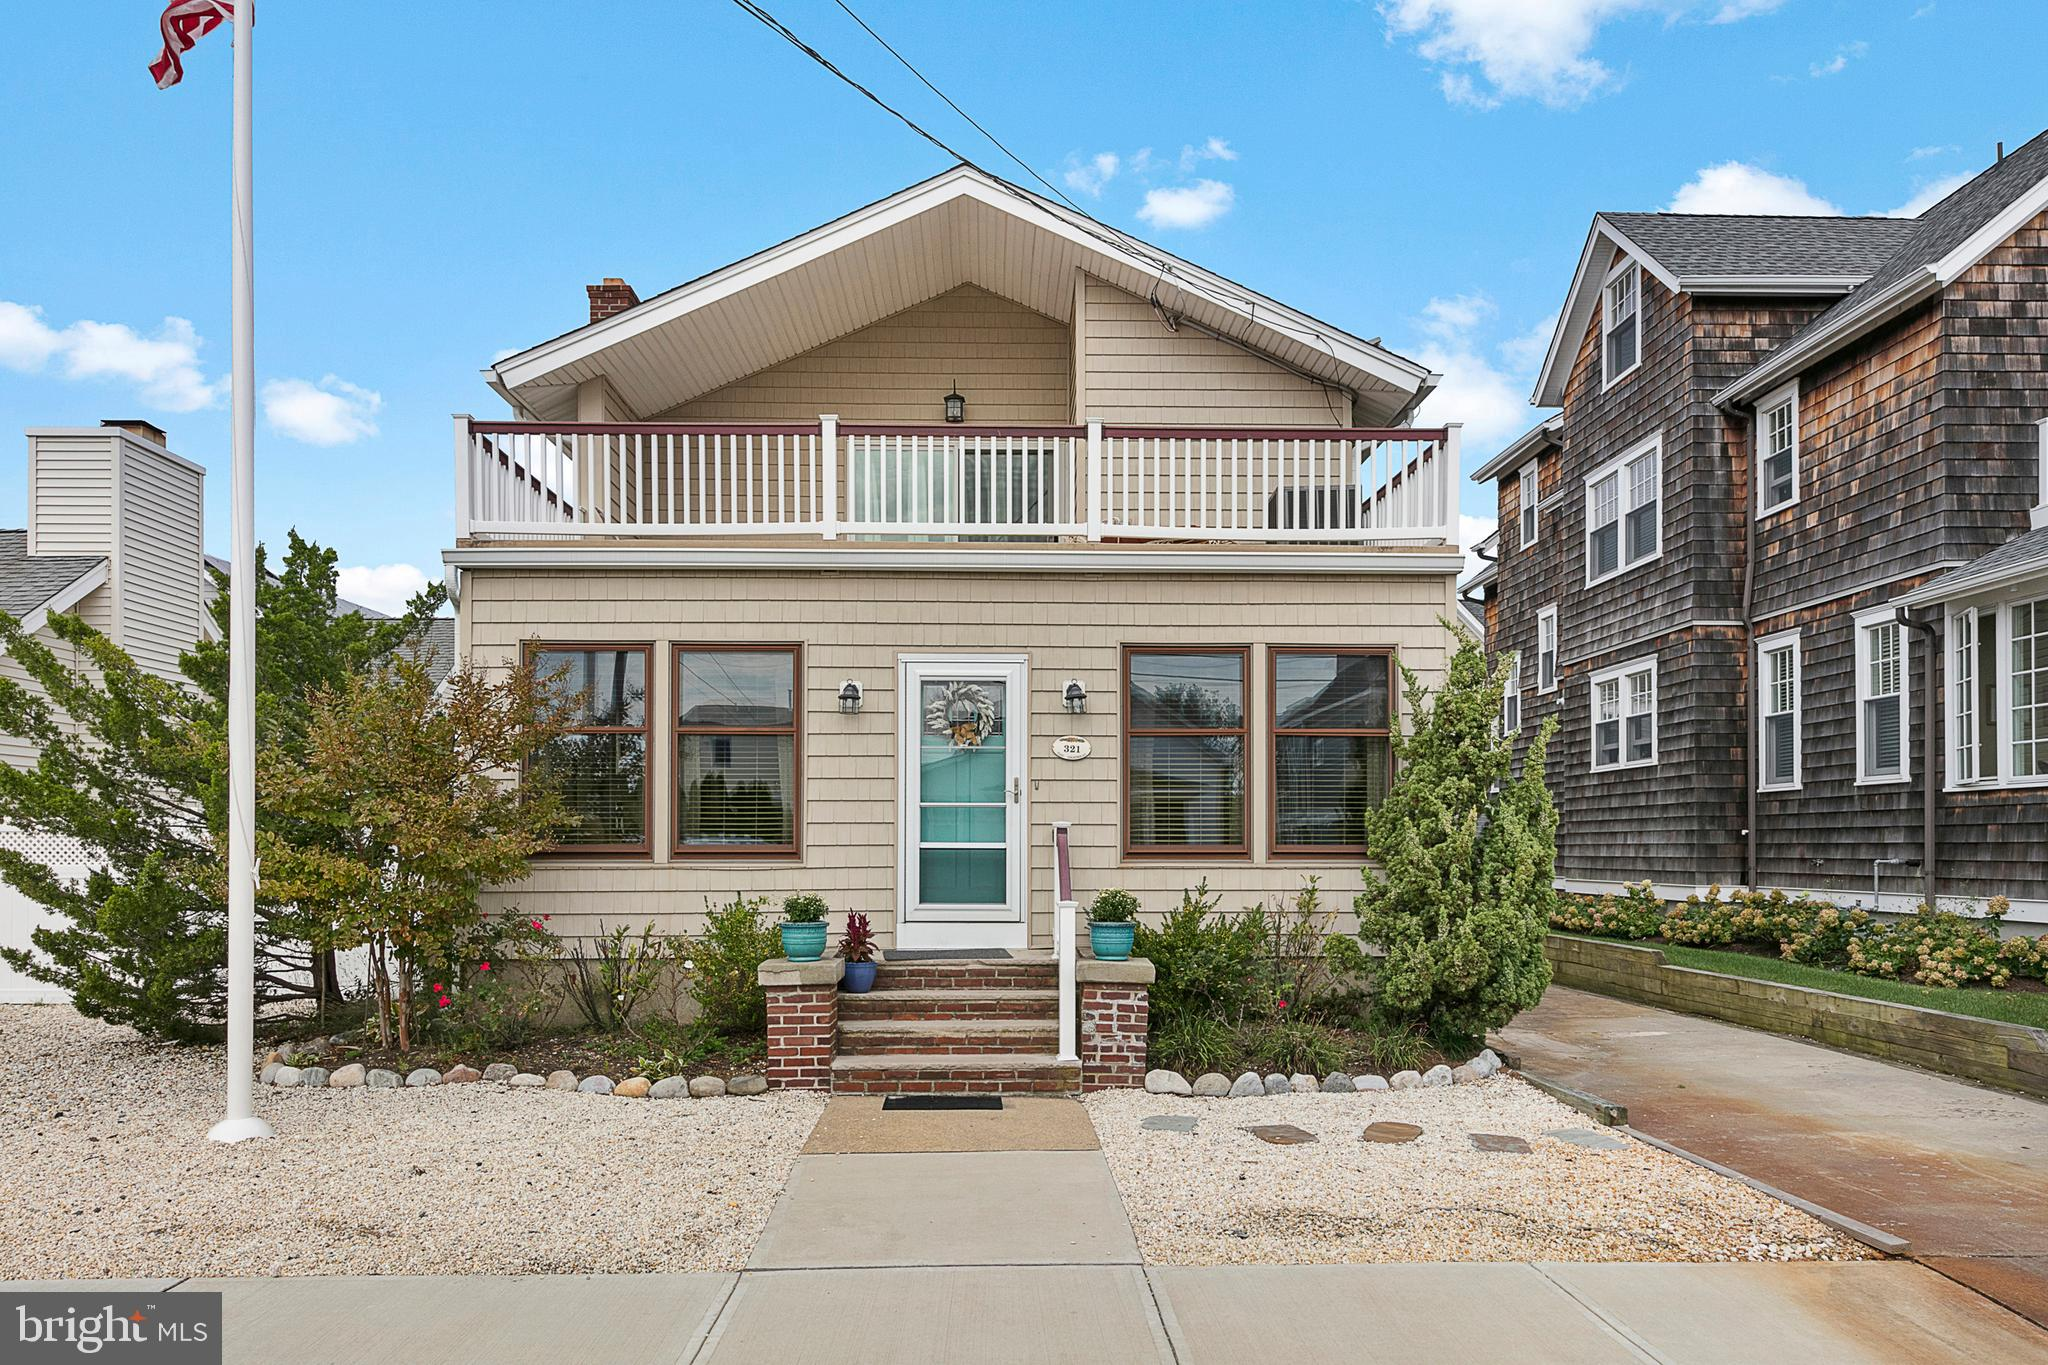 321 6TH, NORMANDY BEACH, NJ 08739